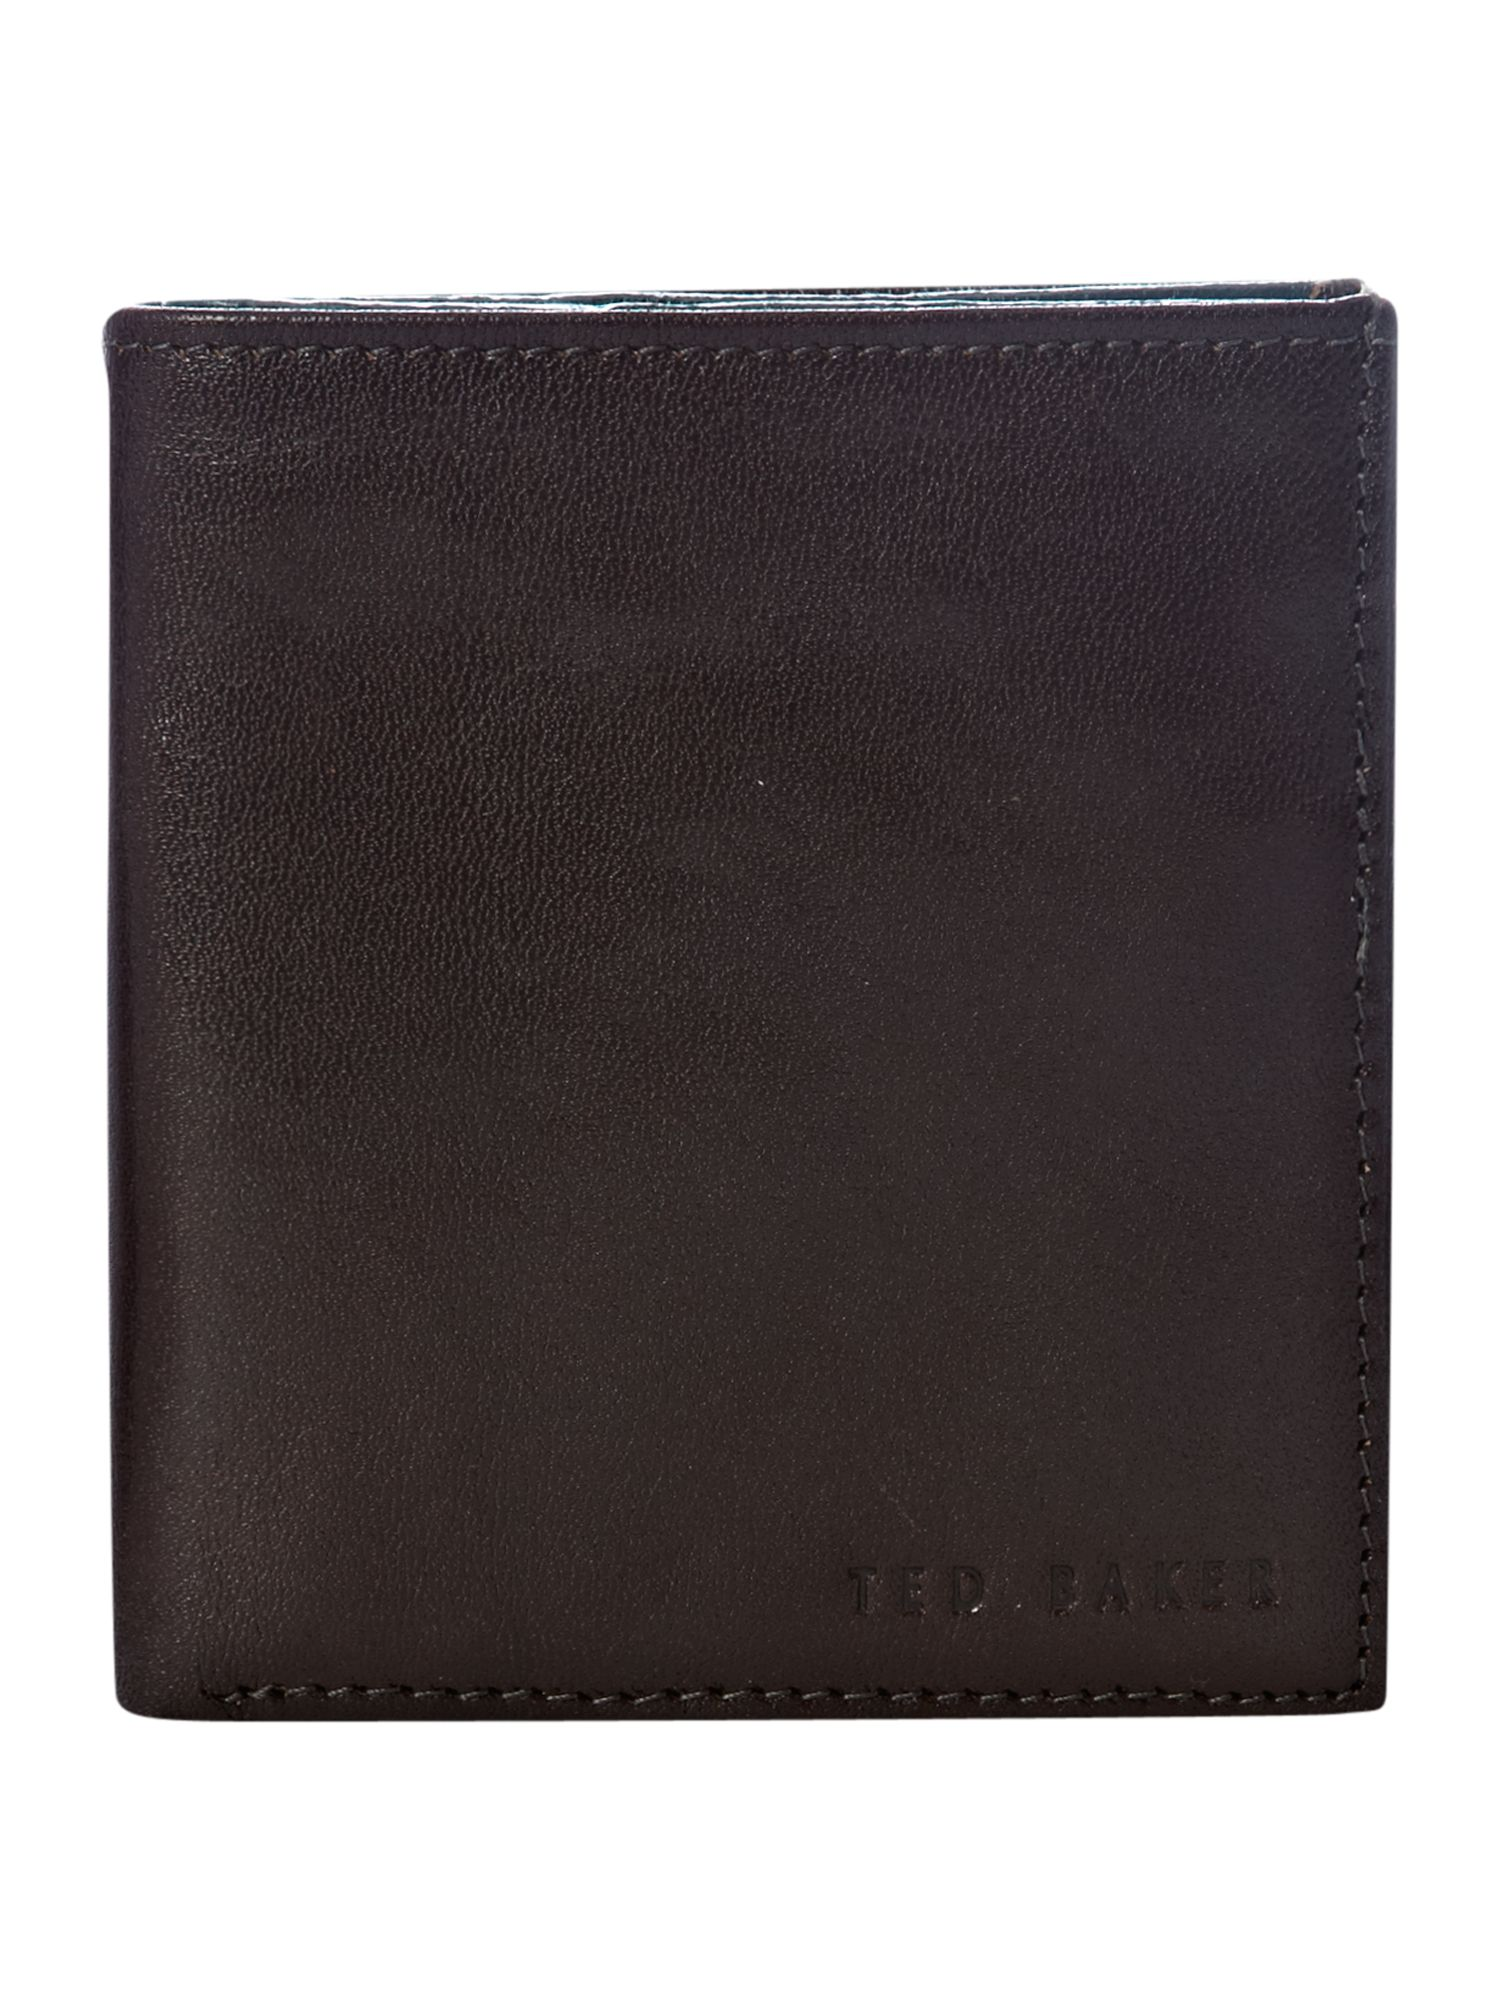 Small card holder wallet